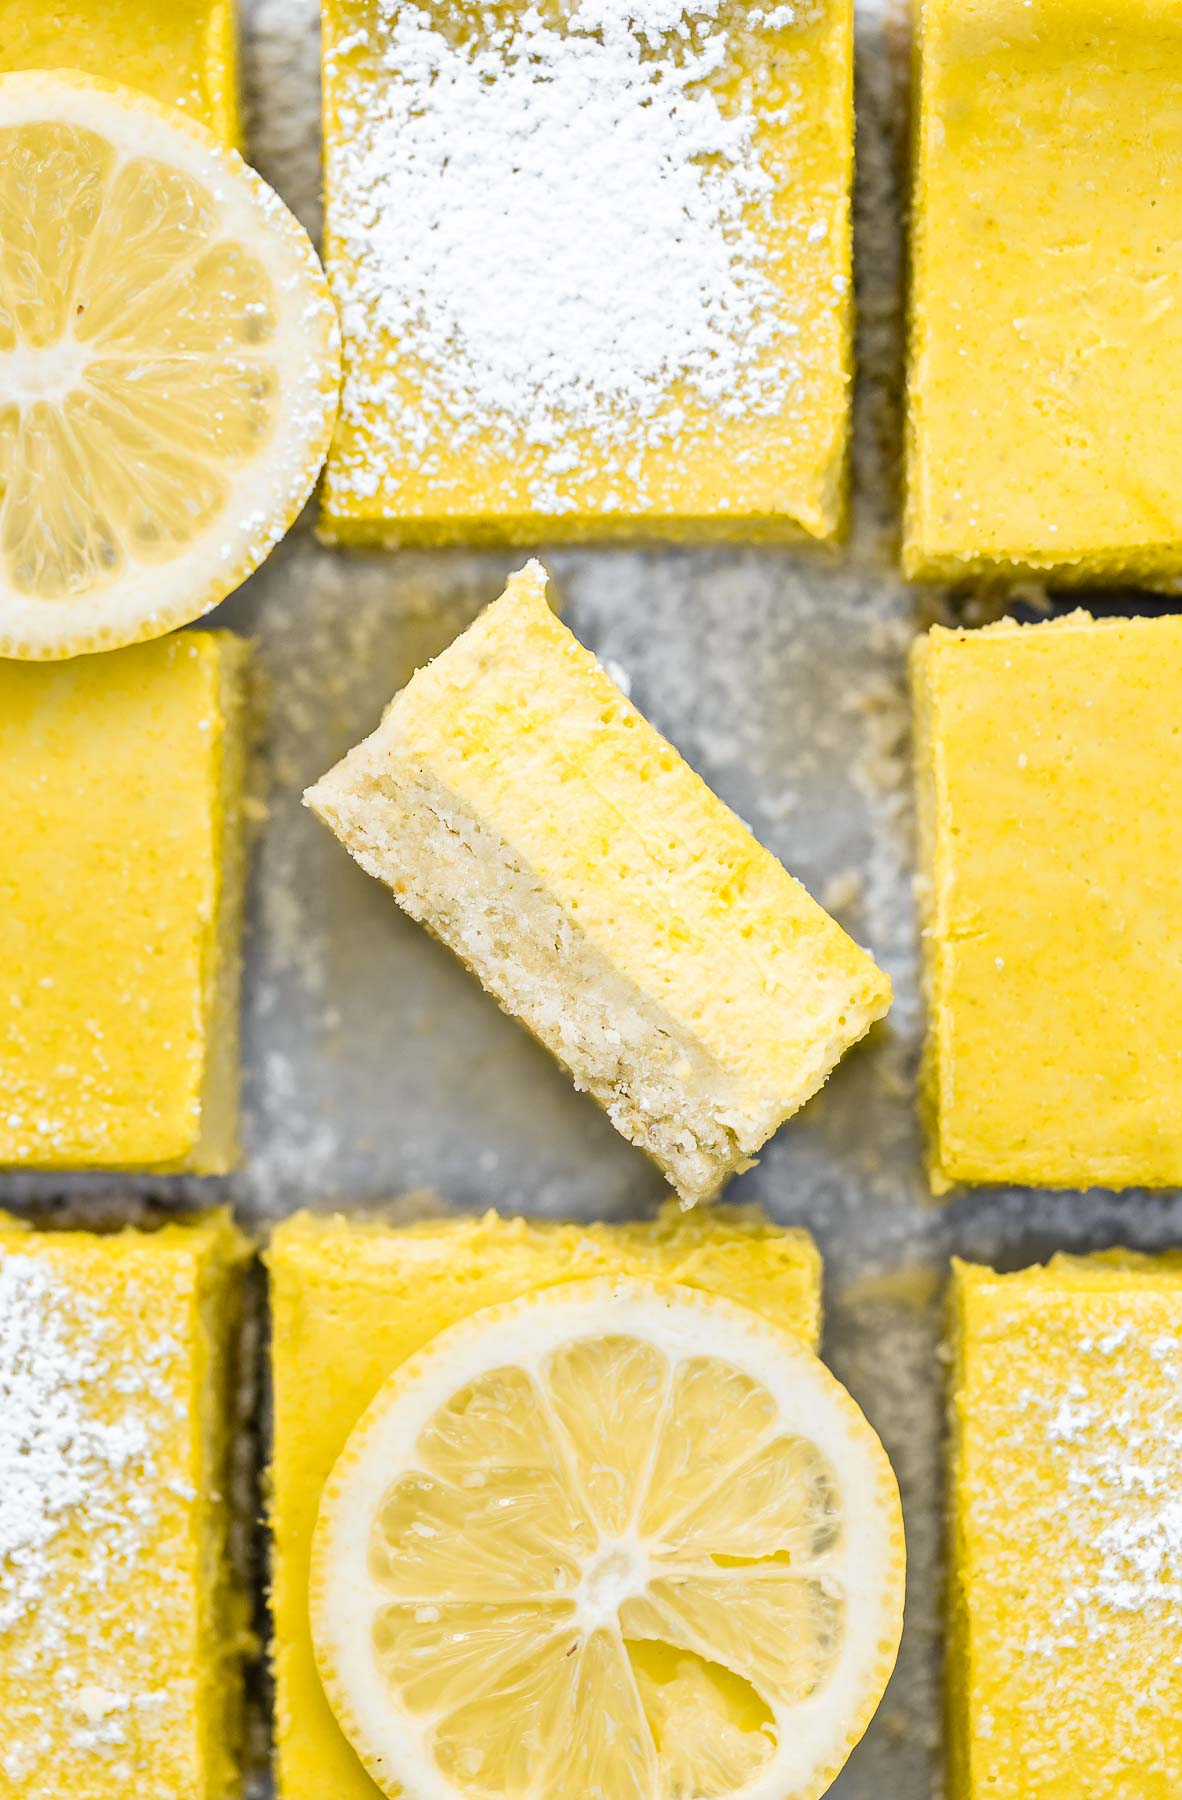 Lemon bars with one on the side to show the texture and crust.